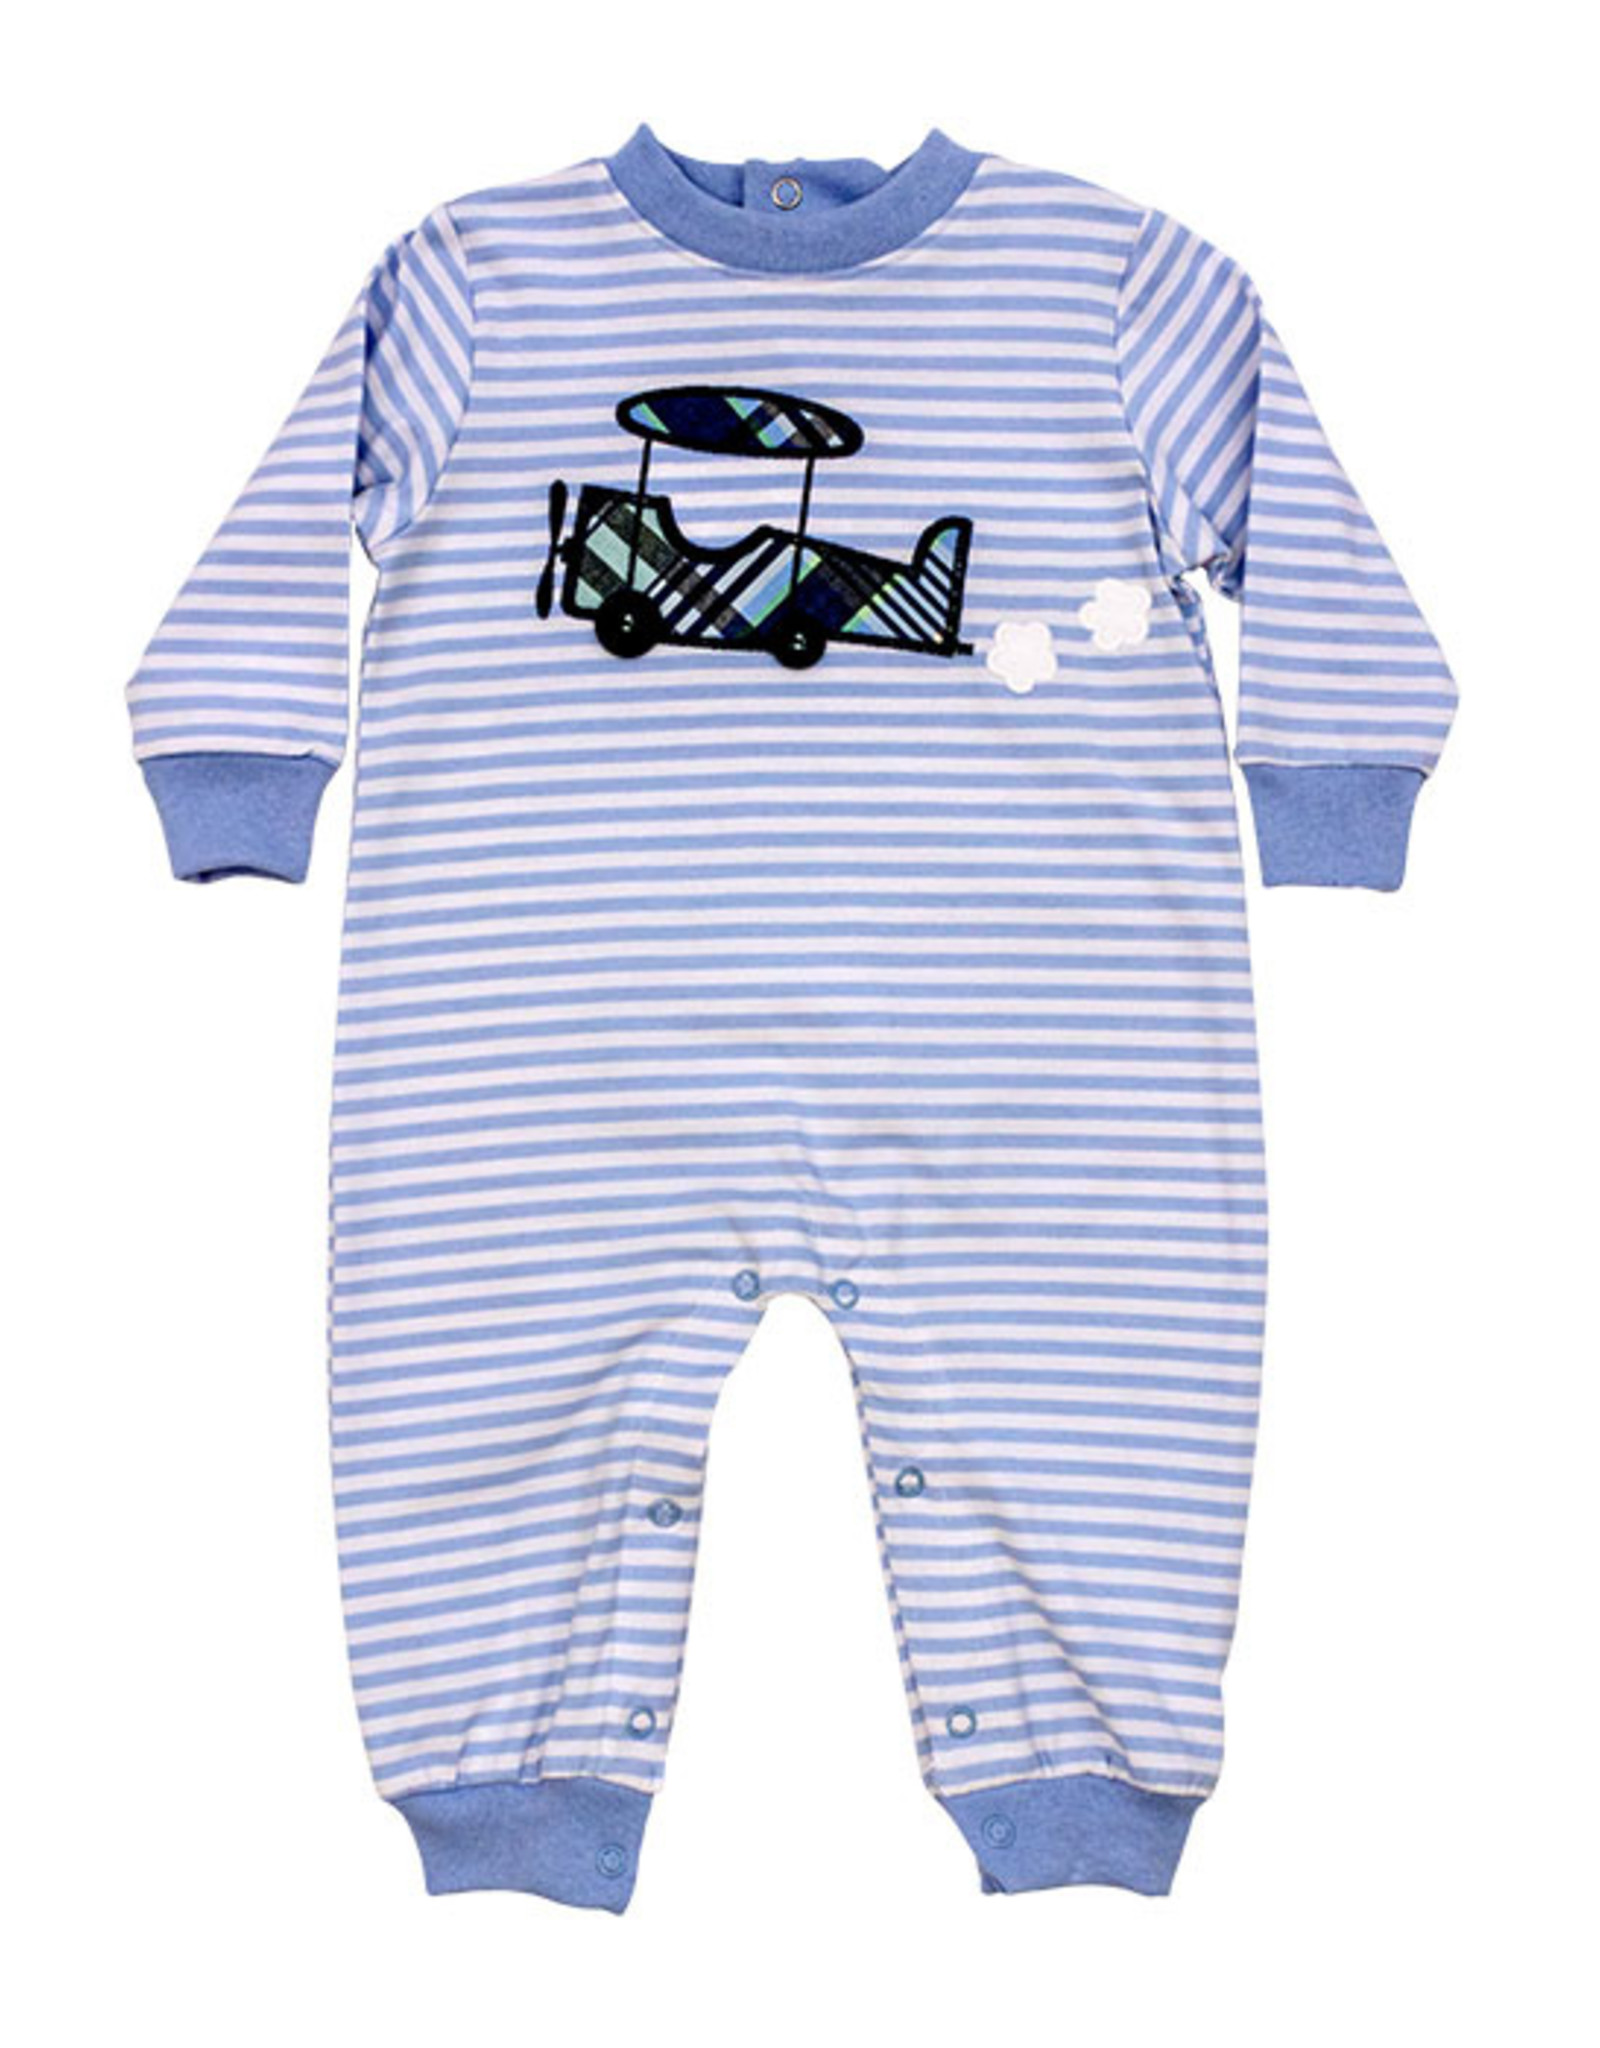 The Bailey Boys Airplane Knit Romper